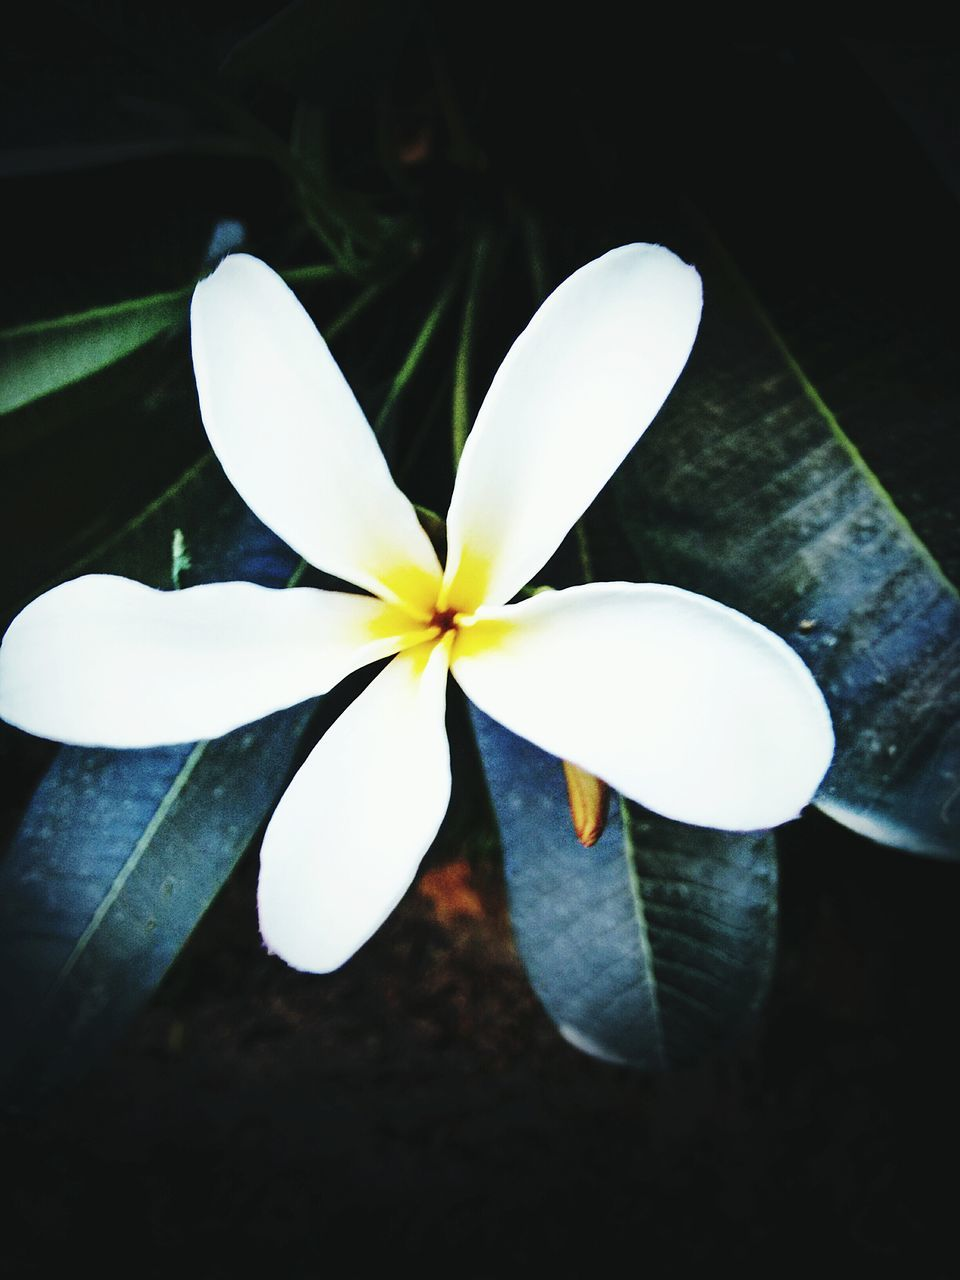 flower, petal, fragility, flower head, frangipani, beauty in nature, white color, close-up, freshness, high angle view, leaf, nature, growth, night, plant, no people, outdoors, periwinkle